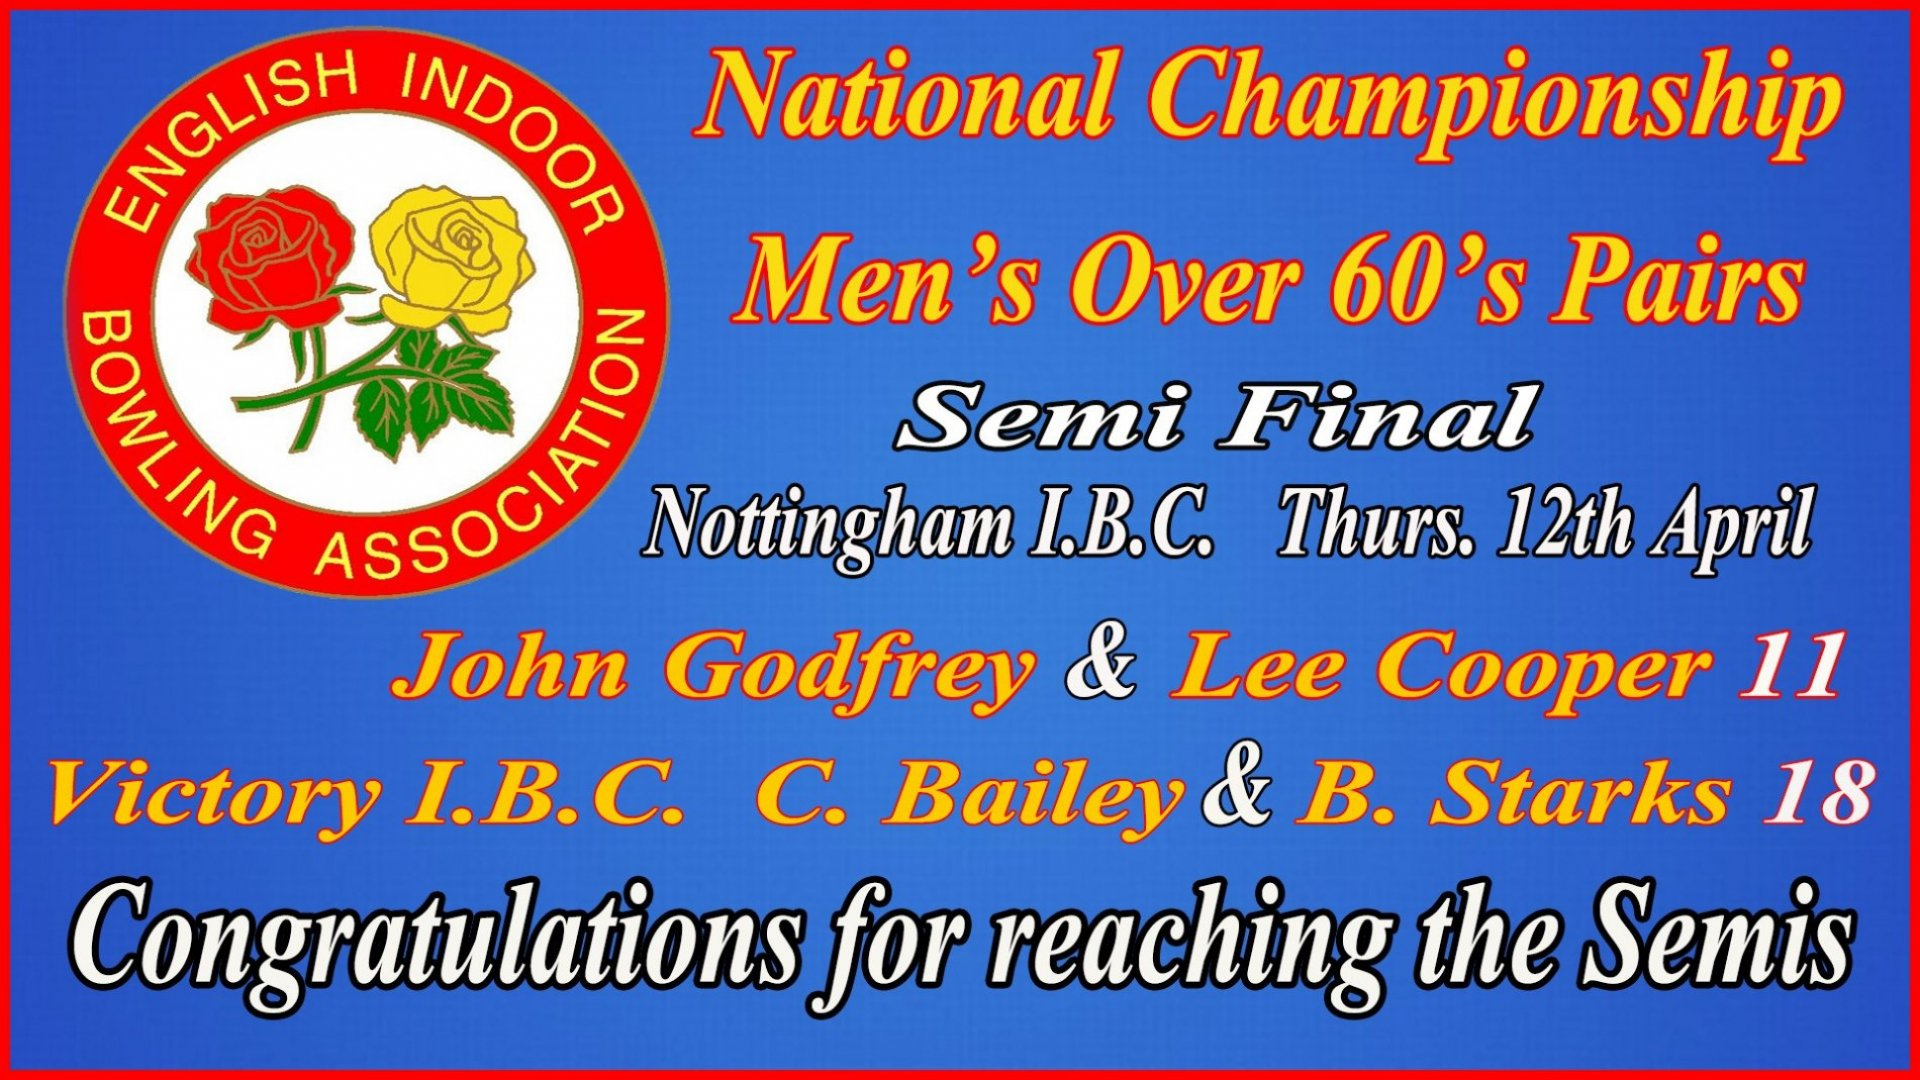 National Championship Men's Inter Club - Over 60's Pairs - Semi Final John Godfrey & Lee Cooper v's Victory IBC- Result (12.4.18